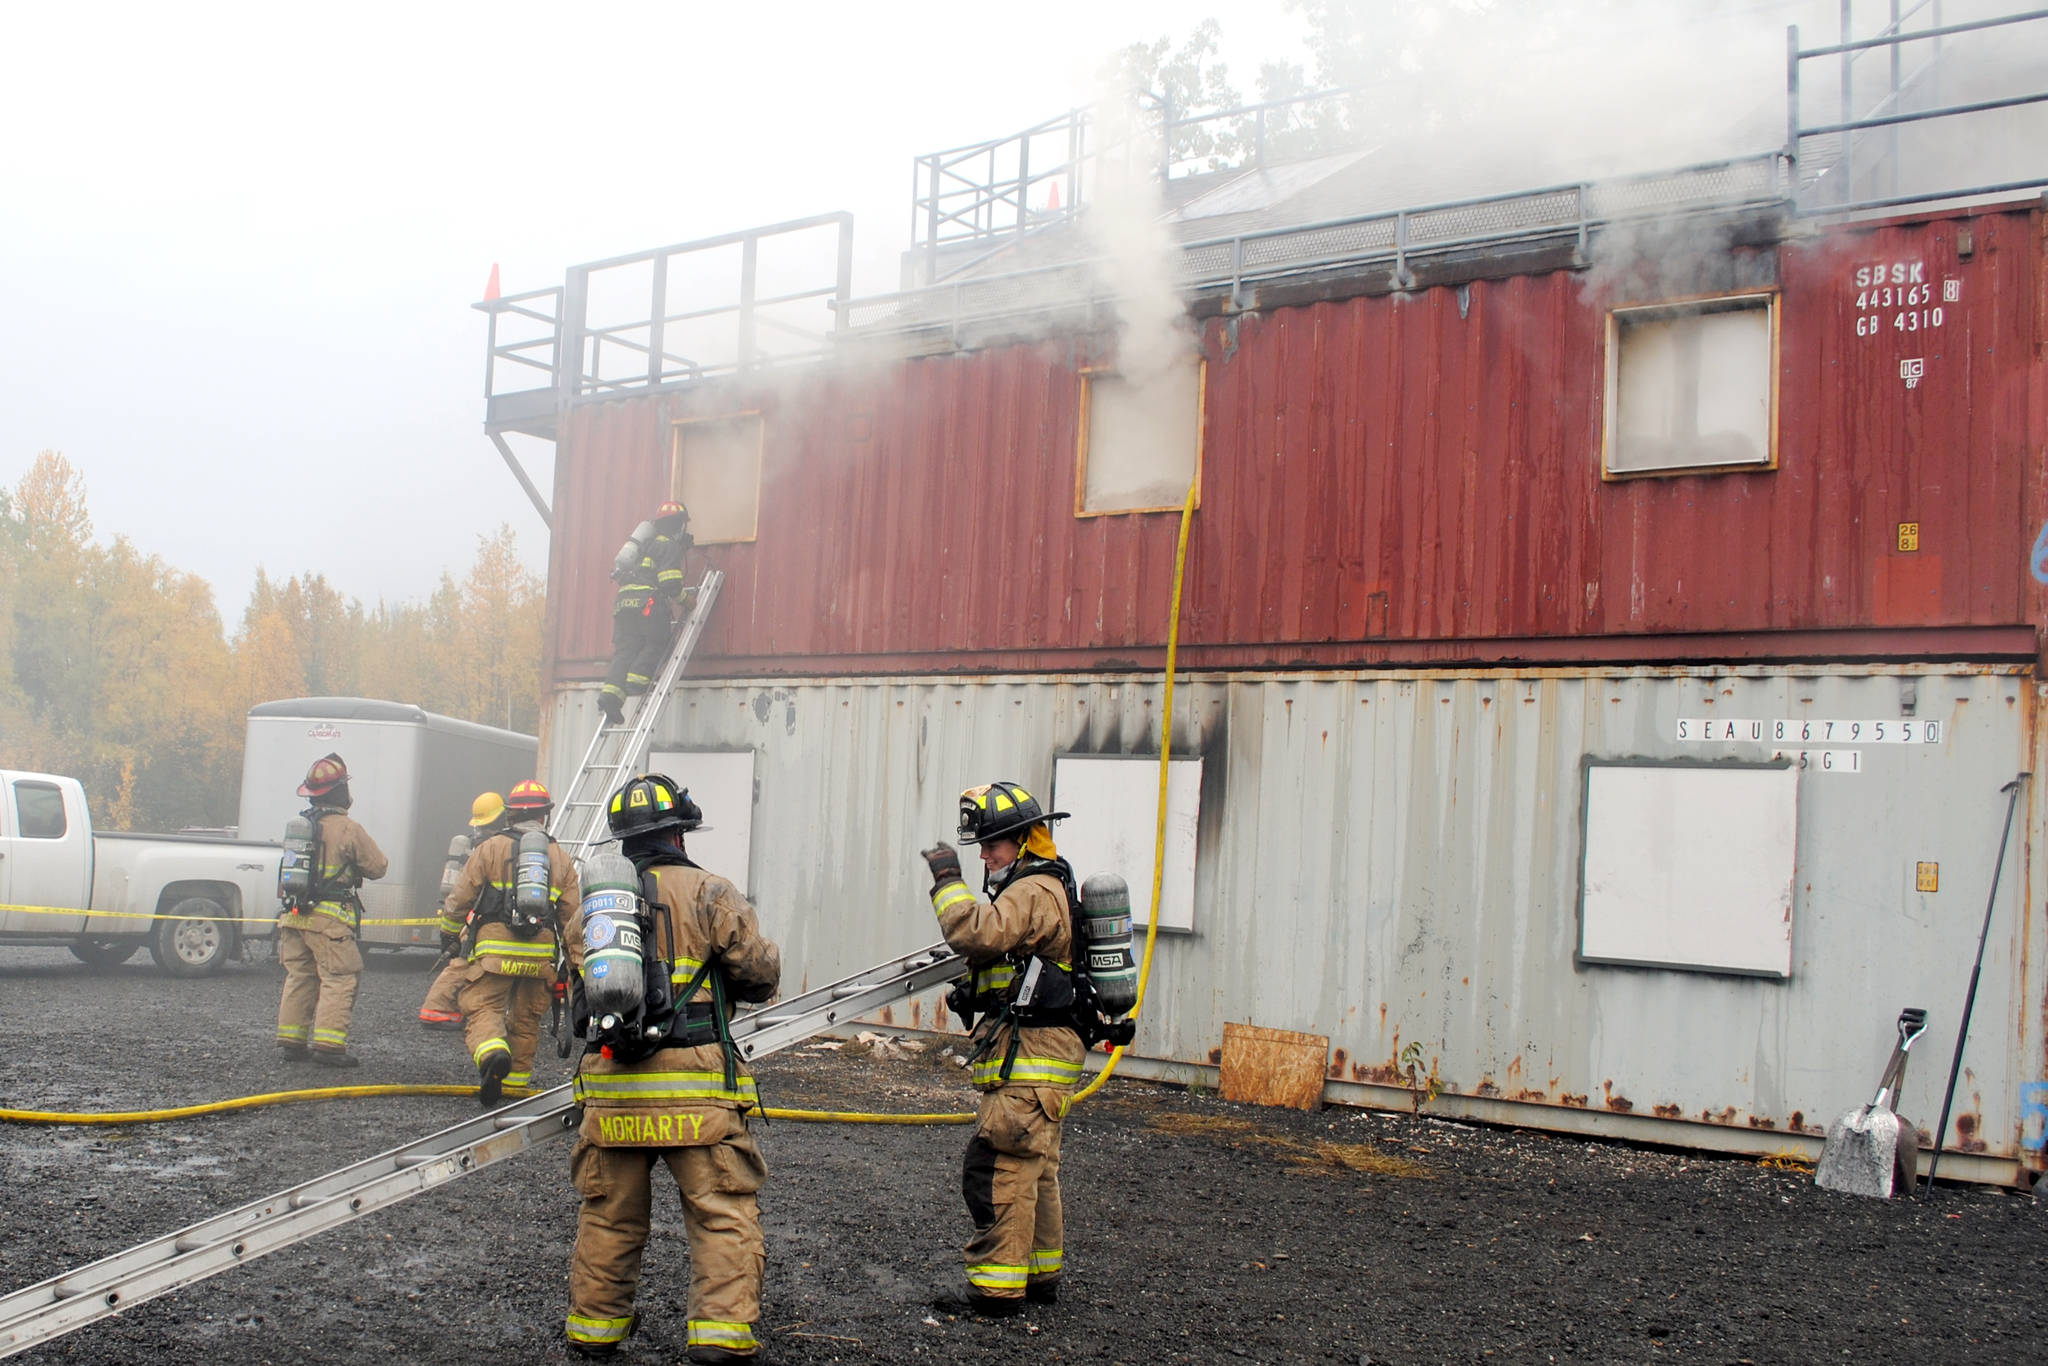 Firefighters respond to a controlled fire in a group of conexes off of Arc Loop Road in Soldotna. The area was set up to resemble a home and a fire was set in different sections of the building to test the firefighters. The training on Thursday was part of the Alaska Fire Conference which is being held in Kenai this week. (Photo by Kat Sorensen/Peninsula Clarion)